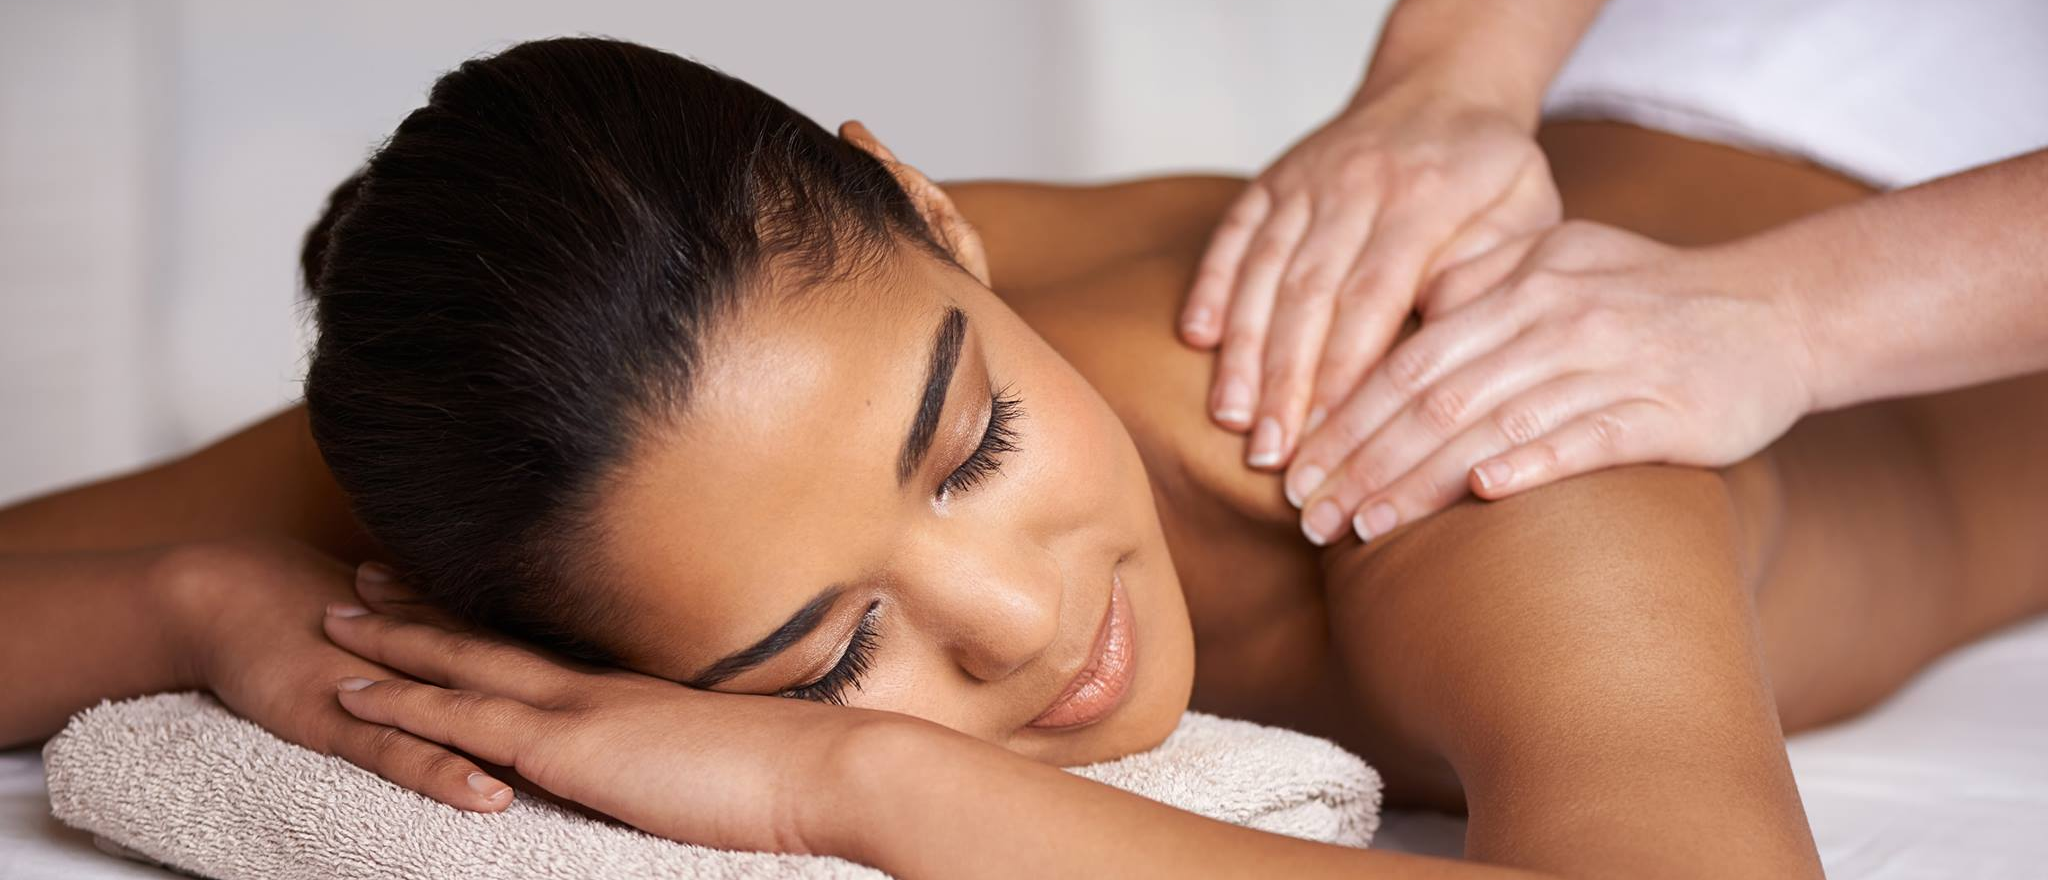 a woman receives a shoulder massage while lying down on a massage table at Upper West Spa